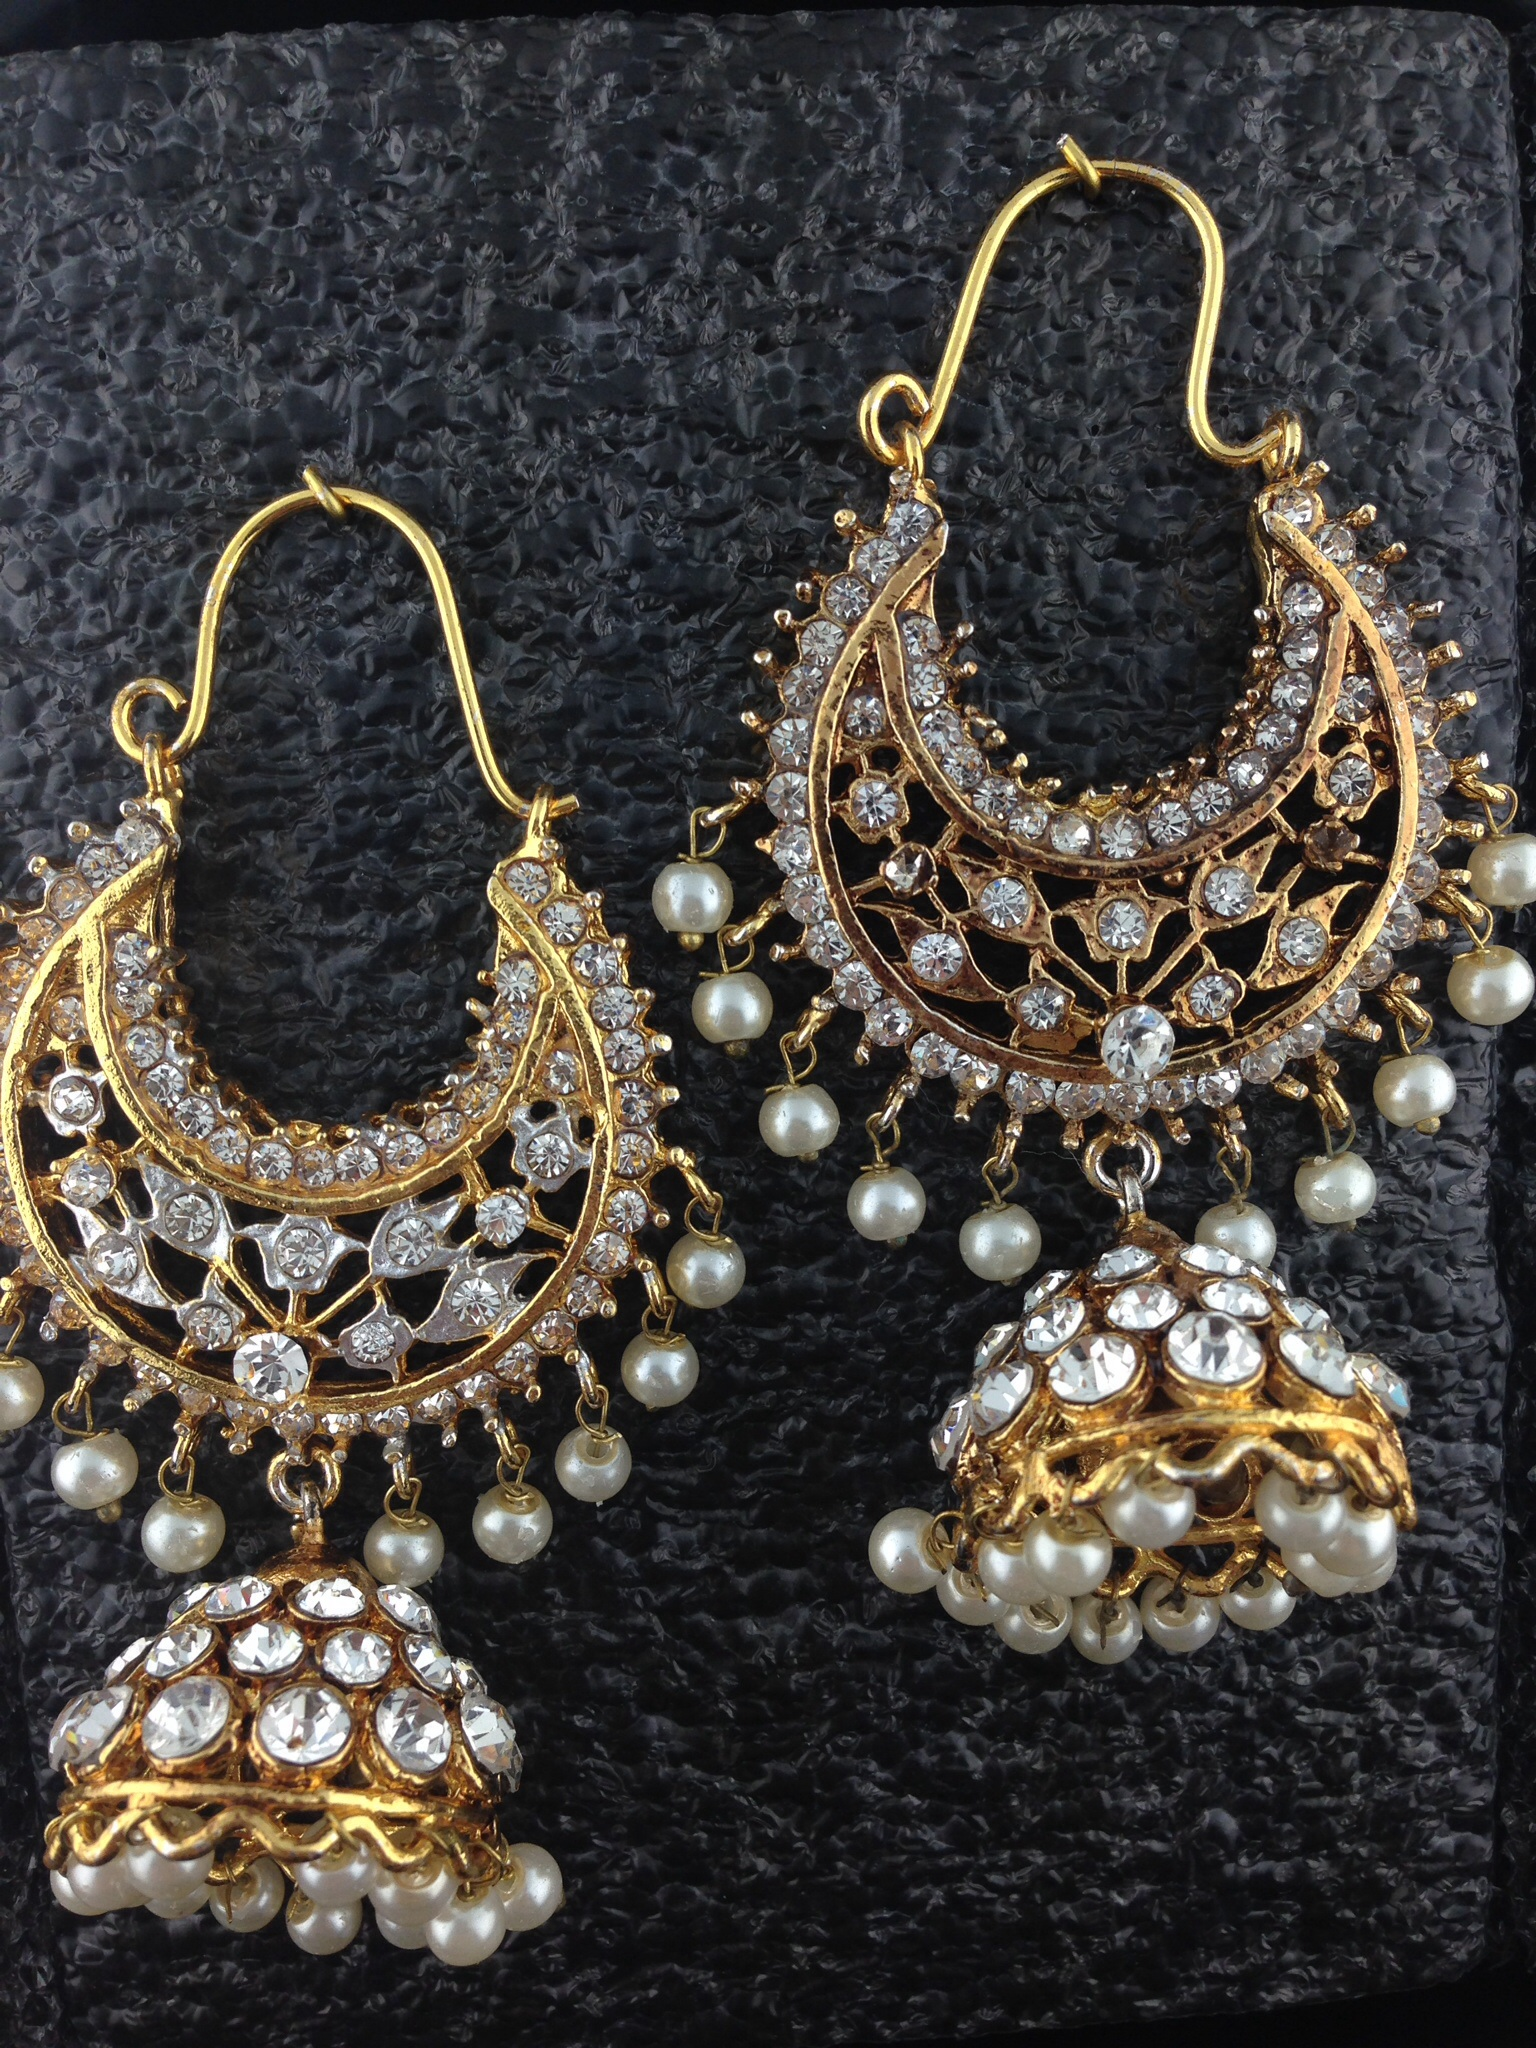 Gold Polished Chand Bali With Pearls And Crystal.